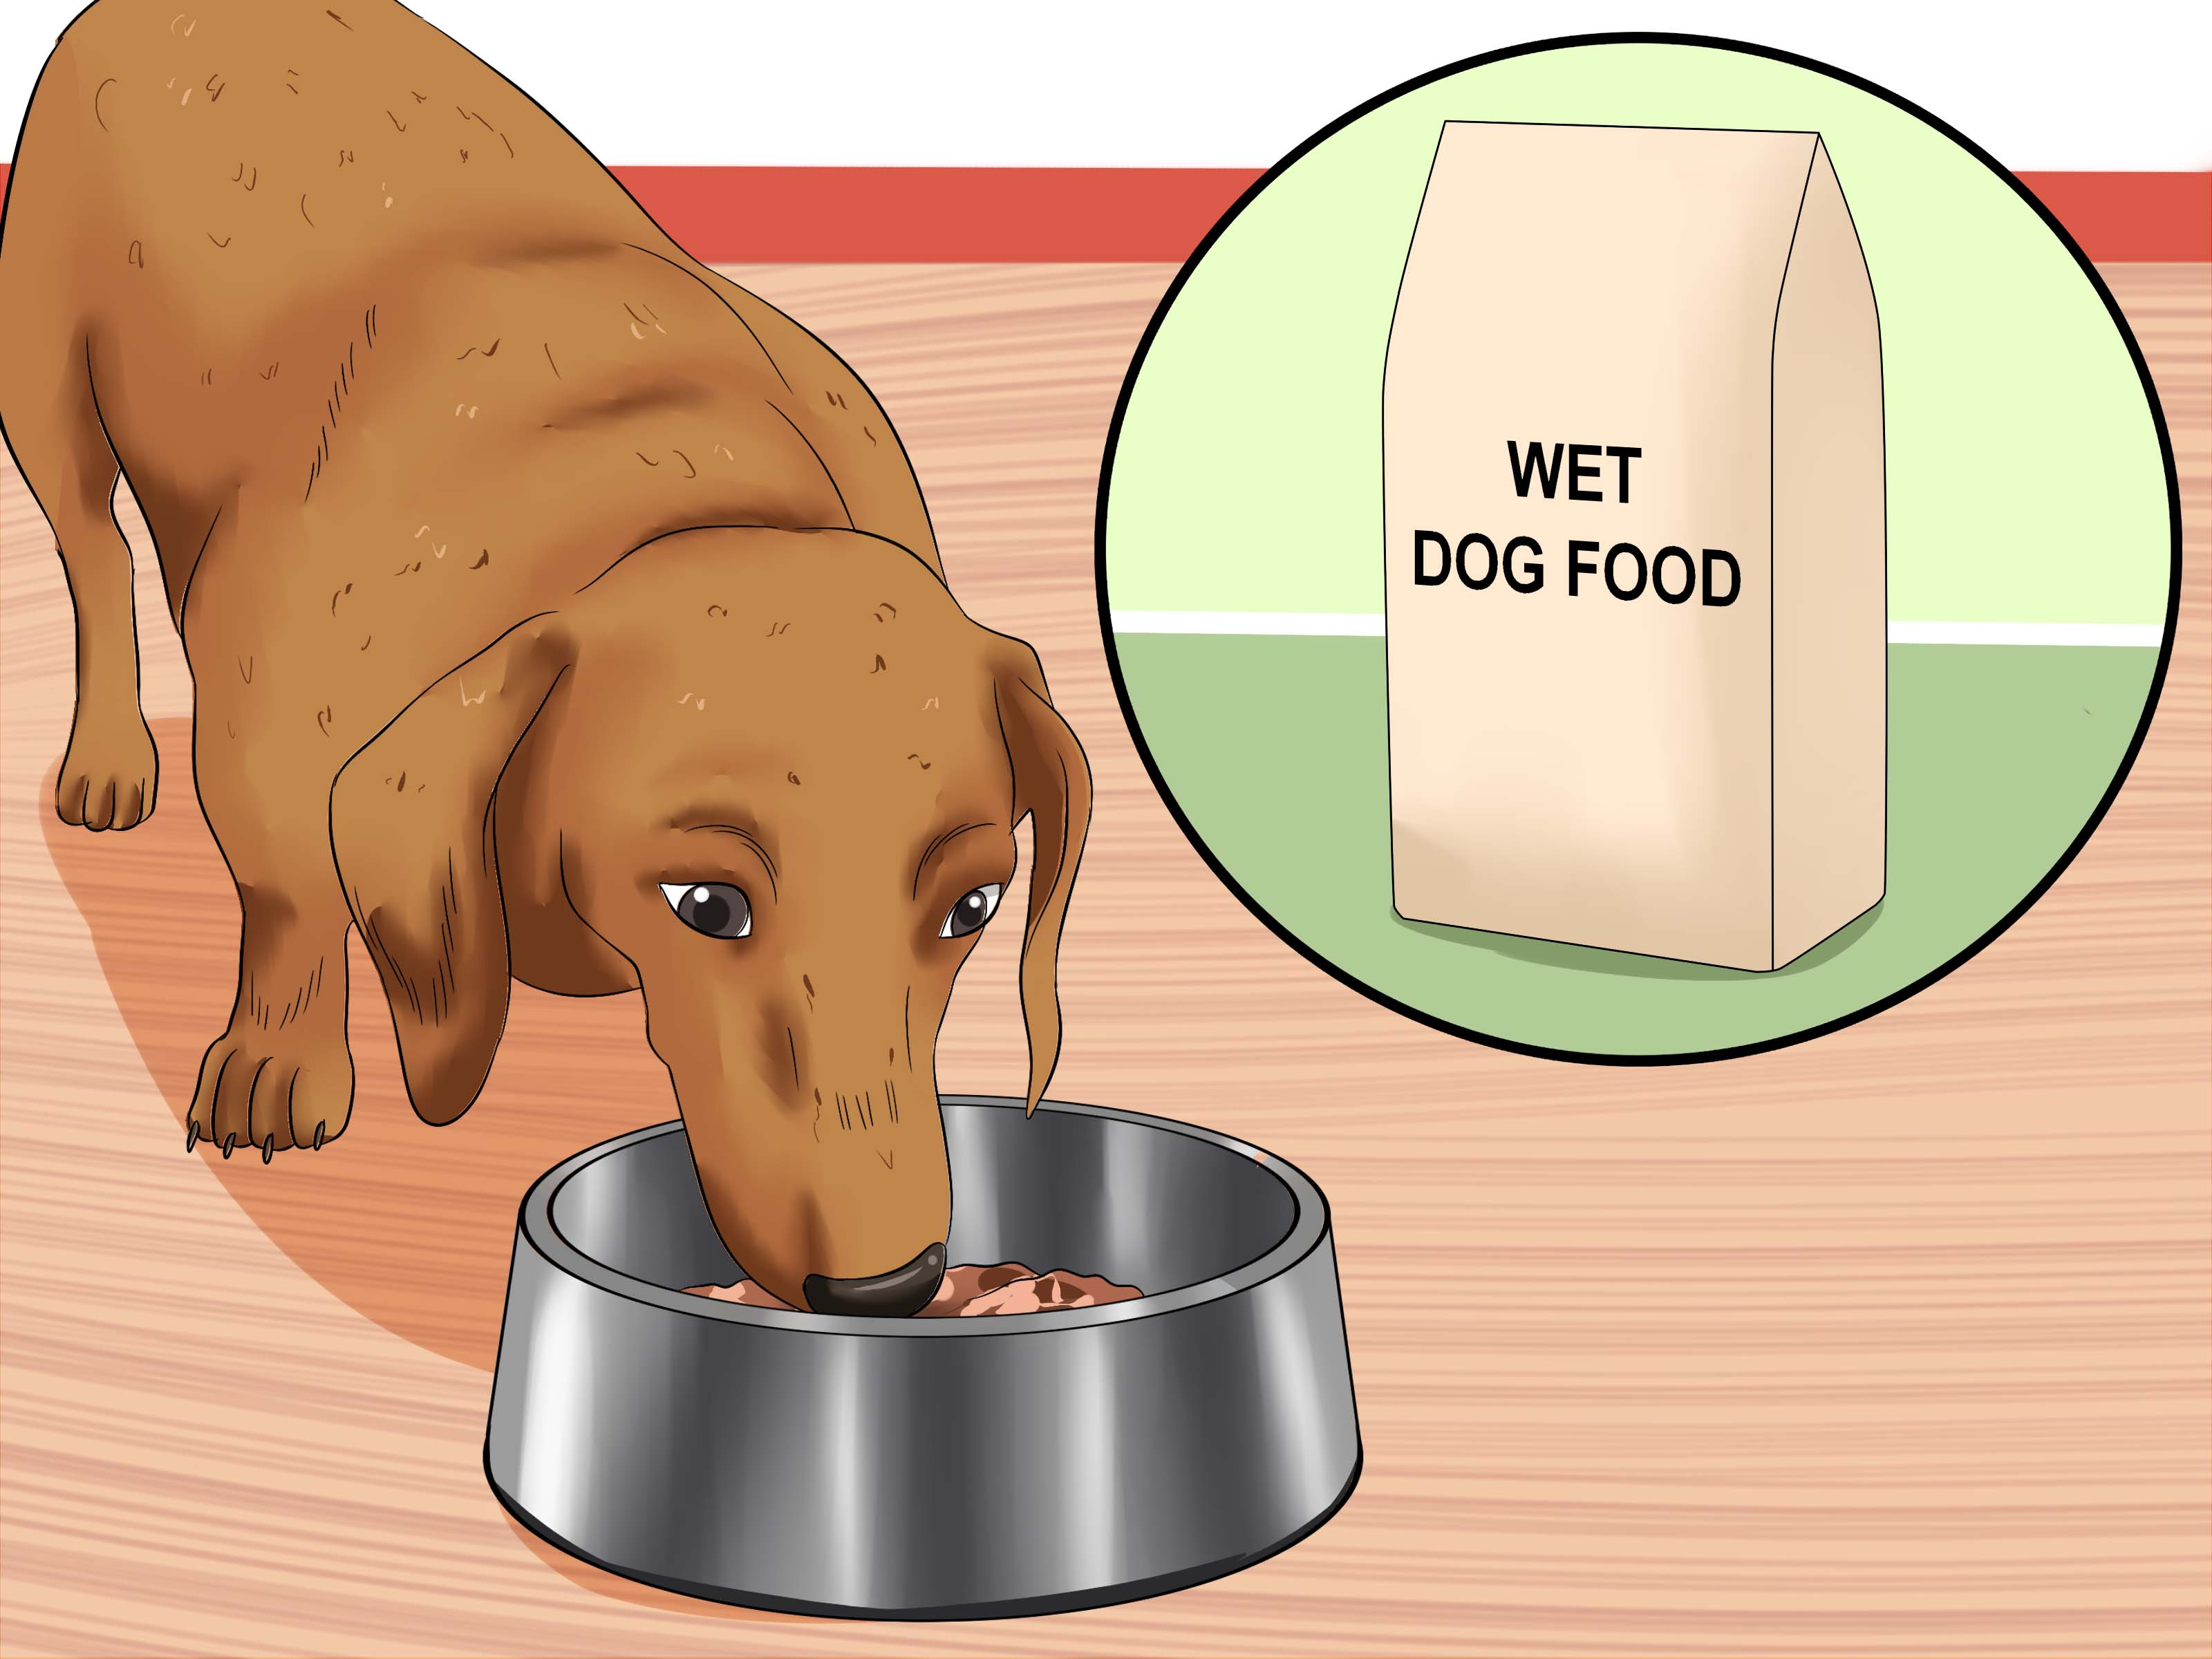 Precious Morning Dog Vomiting Yellow Bile Will Not Eat Cure Frequent Dog Vomiting Step 11 Dog Vomiting Yellow Bile houzz 01 Dog Vomiting Yellow Bile